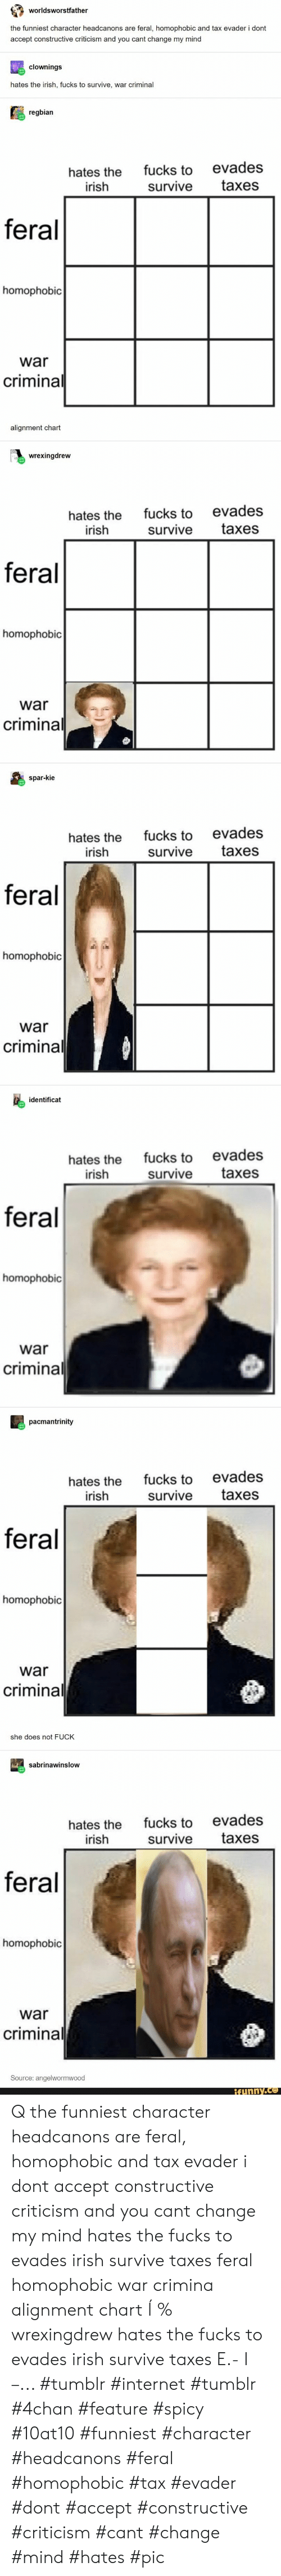 Criticism: worldsworstfather  the funniest character headcanons are feral, homophobic and tax evader i dont  accept constructive criticism and you cant change my mind  clownings  hates the irish, fucks to survive, war criminal  regbian  evades  fucks to  hates the  irish  taxes  survive  feral  homophobic  war  criminal  alignment chart  wrexingdrew  fucks to evades  hates the  irish  taxes  survive  feral  homophobic  war  criminal  spar-kie  fucks to evades  survive  hates the  irish  taxes  feral  homophobic  war  criminal  identificat  fucks to evades  hates the  irish  taxes  survive  feral  homophobic  war  criminal  pacmantrinity  fucks to evades  survive  hates the  irish  taxes  feral  homophobic  war  criminal  she does not FUCK  sabrinawinslow  fucks to evades  hates the  irish  taxes  survive  feral  homophobic  war  criminal  Source: angelwormwood  ifunny.co Q the funniest character headcanons are feral, homophobic and tax evader i dont accept constructive criticism and you cant change my mind hates the fucks to evades irish survive taxes feral homophobic war crimina alignment chart Í % wrexingdrew hates the fucks to evades irish survive taxes E.- I –... #tumblr #internet #tumblr #4chan #feature #spicy #10at10 #funniest #character #headcanons #feral #homophobic #tax #evader #dont #accept #constructive #criticism #cant #change #mind #hates #pic